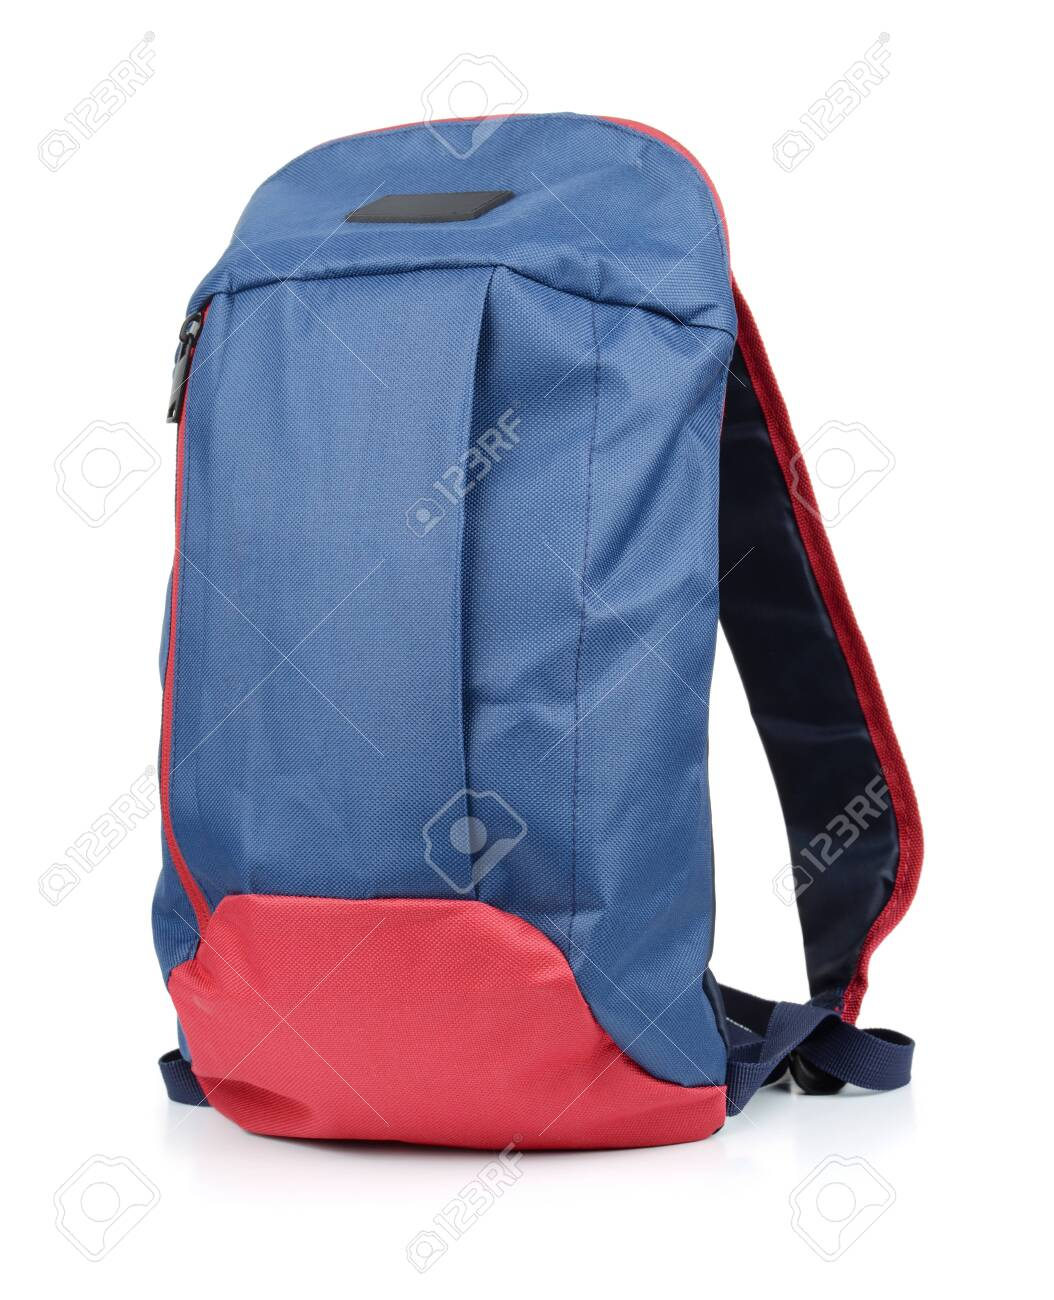 Small blue backpack isolated on white - 130323039